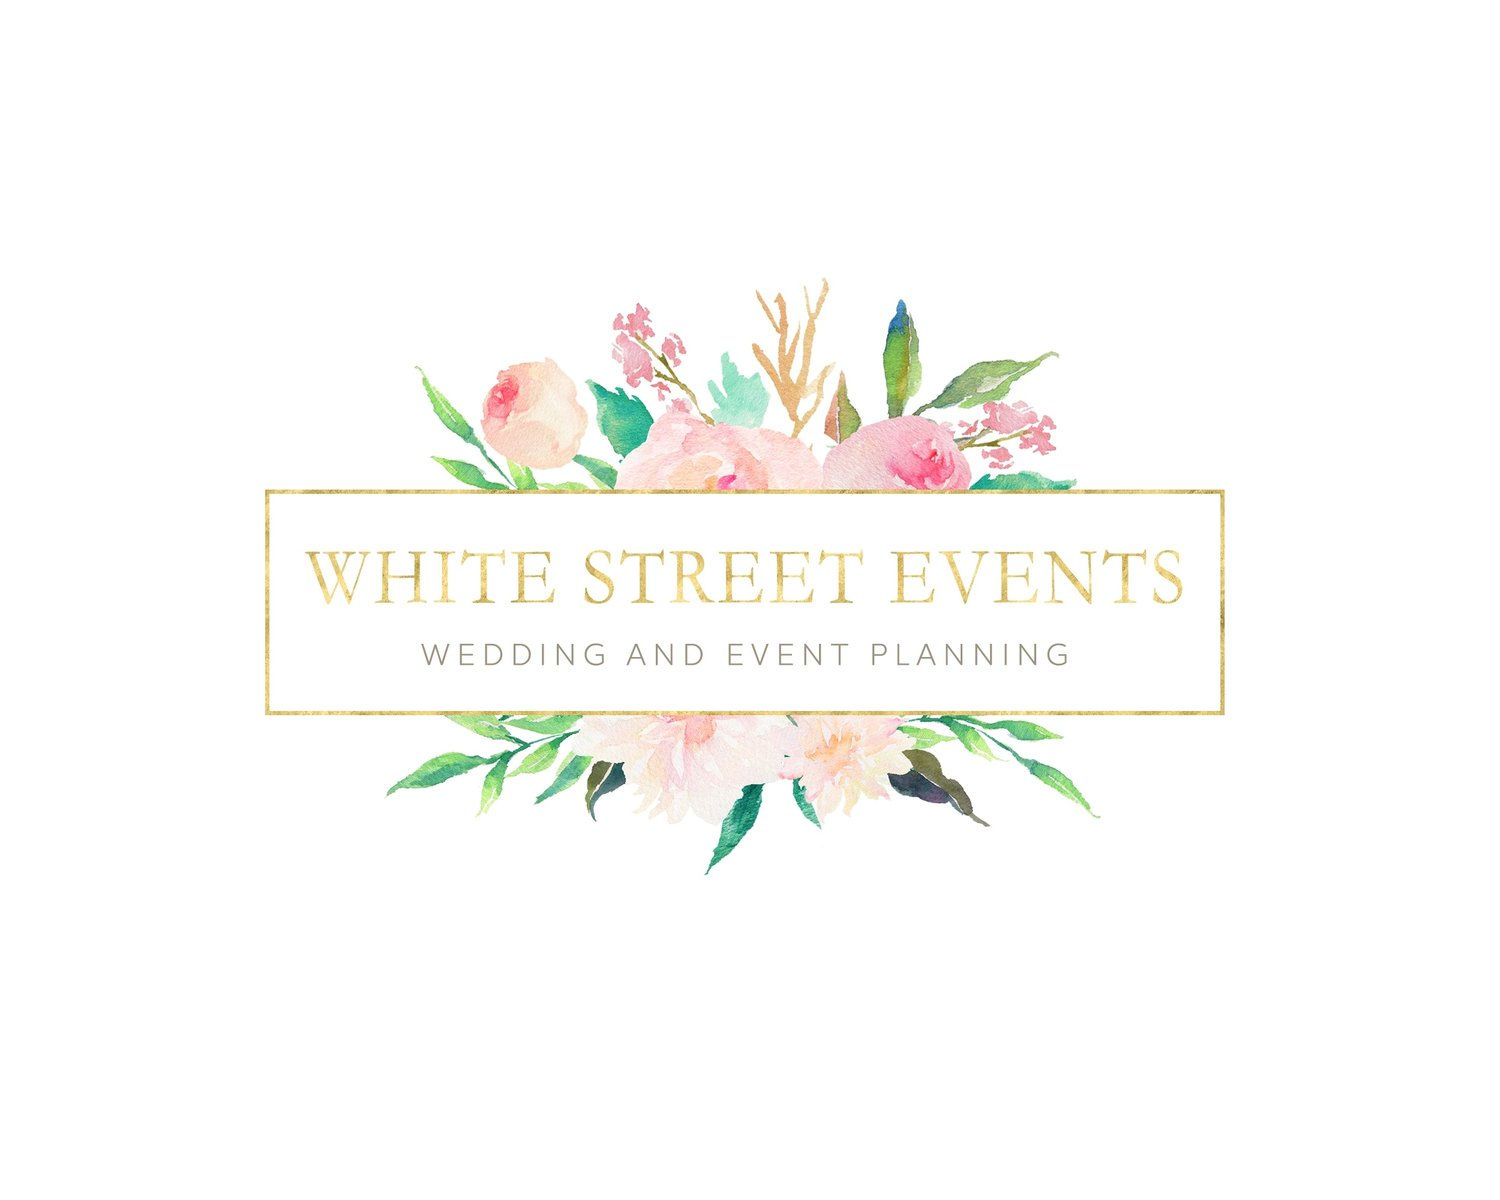 White Street Events